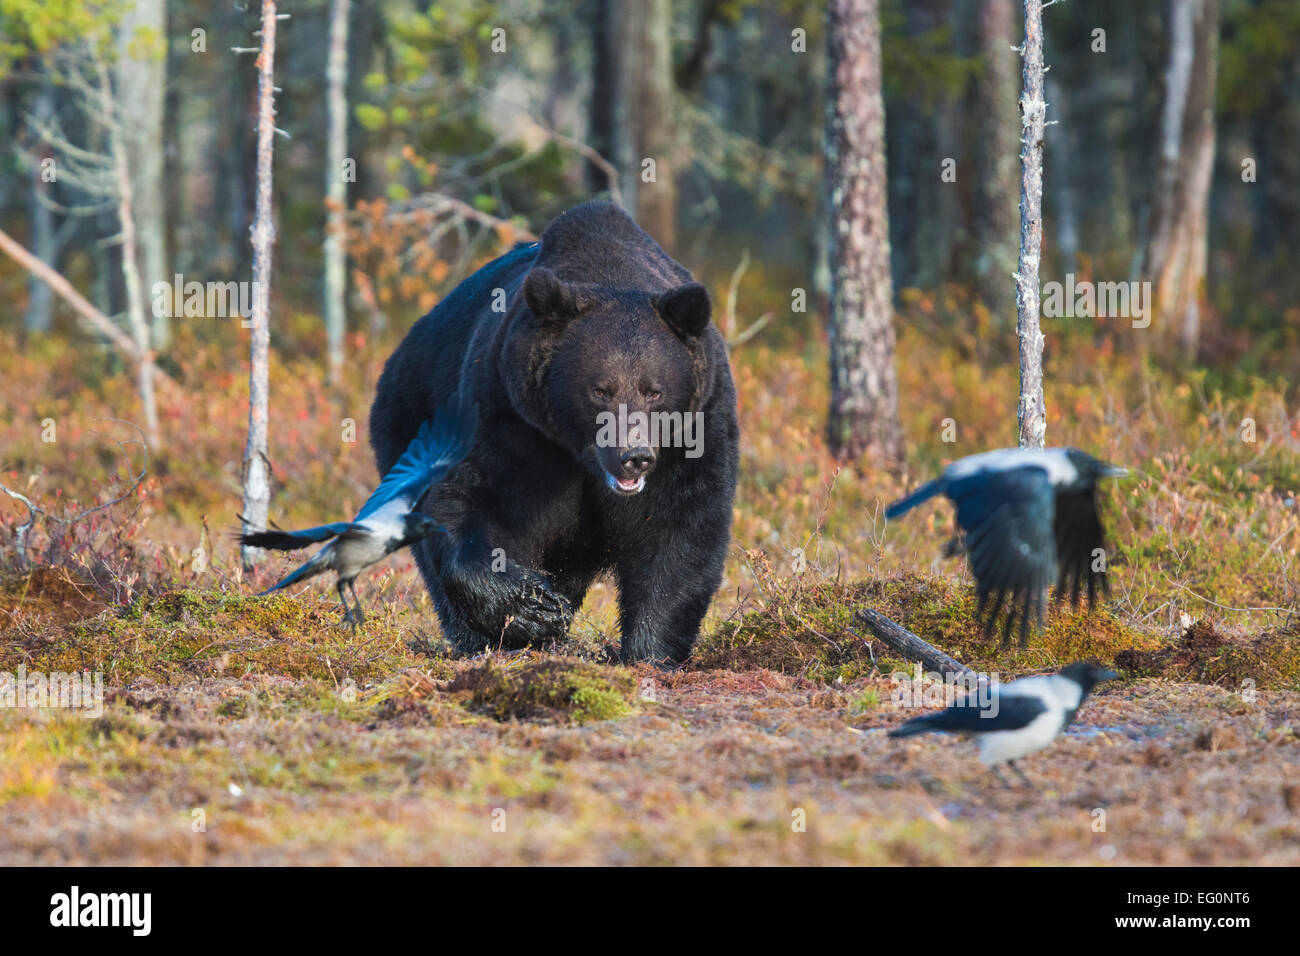 Big brown bear, Ursus arctos coming out from forest and crows are running away, Kuhmo, Finland - Stock Image